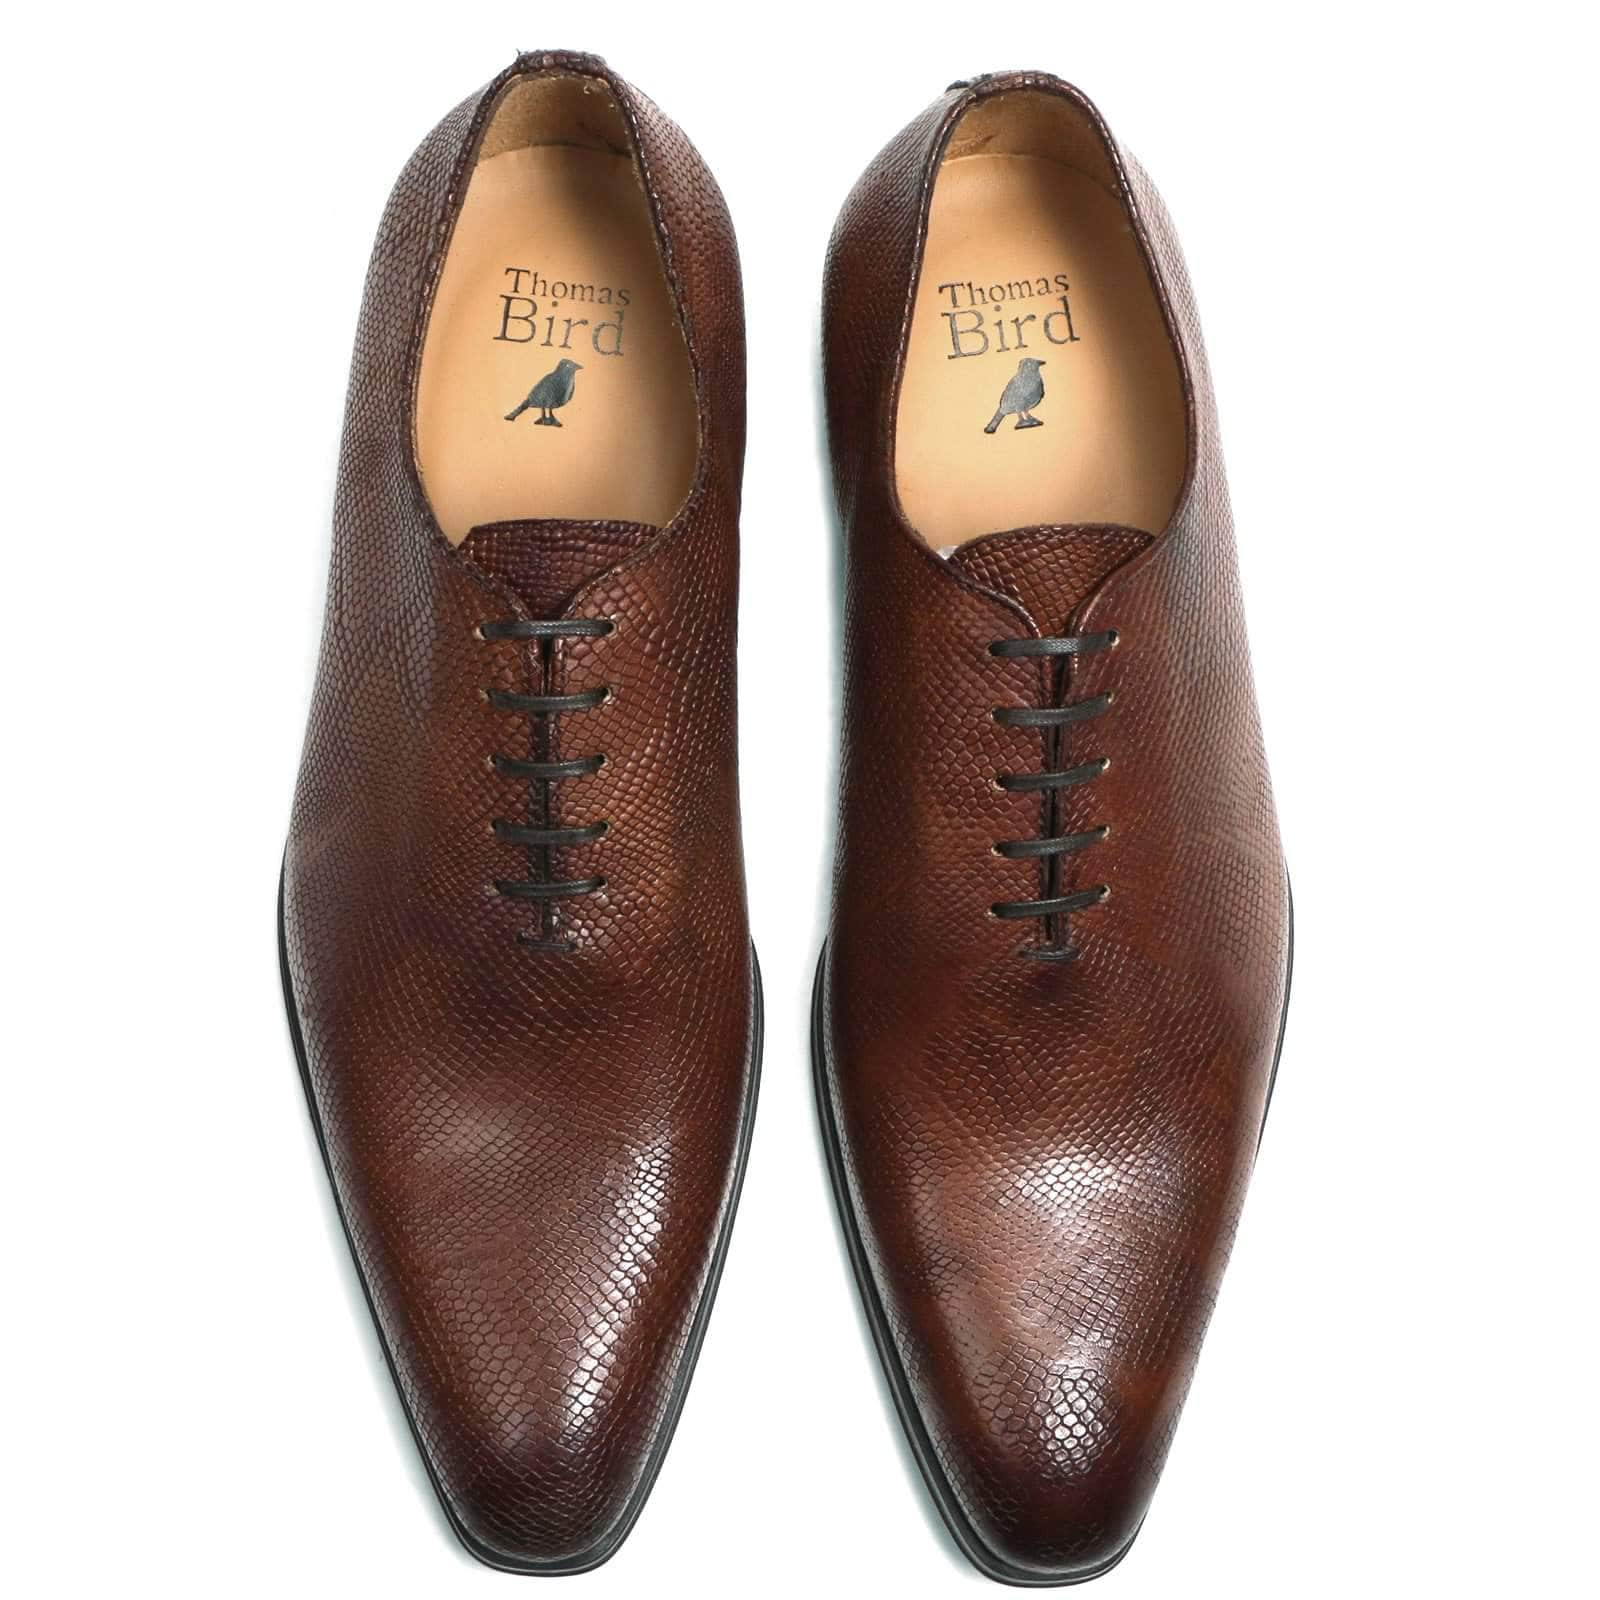 Wholecut shoes - Benson Wholecut Oxford - Brown Snakeskin